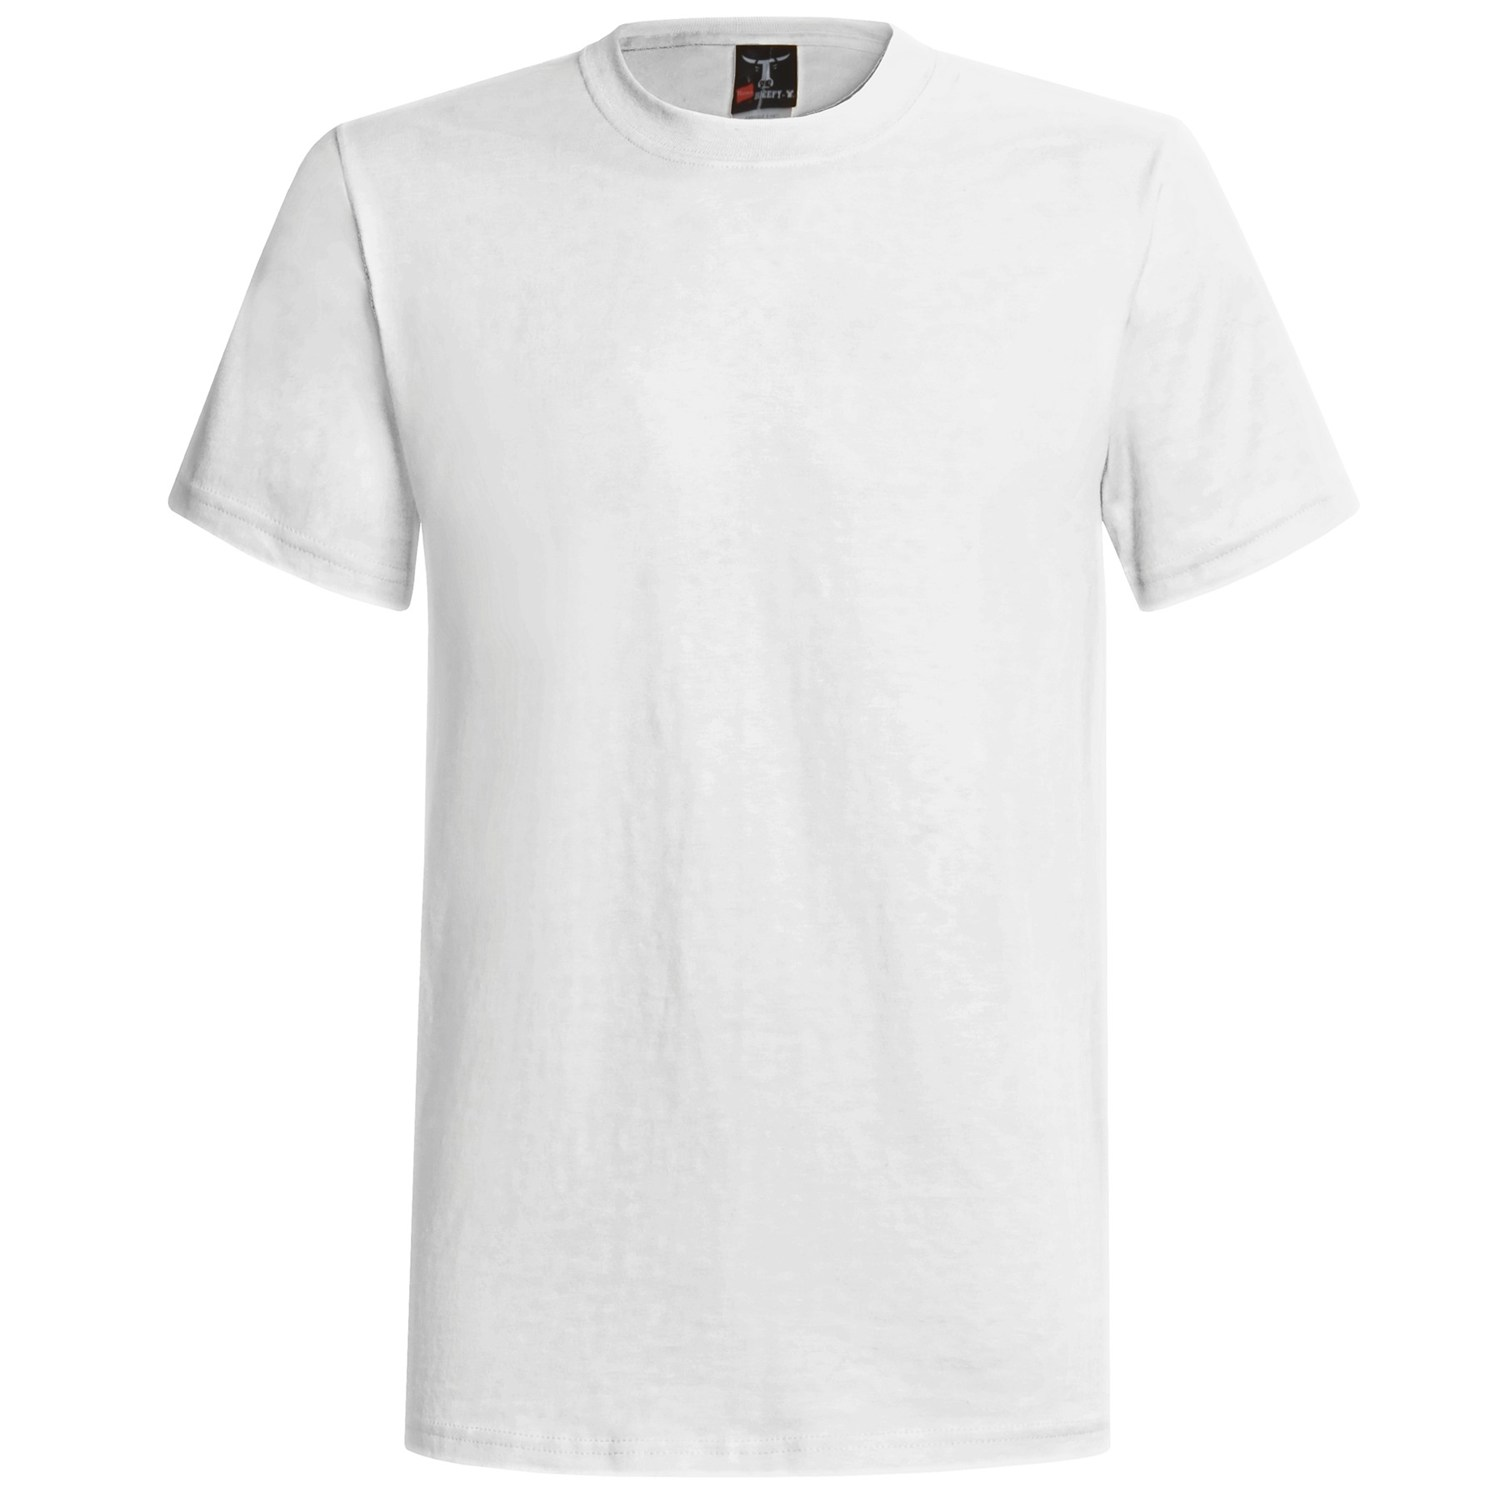 Classic white t shirt ecommerce product catalog demo for Who makes the best white t shirts